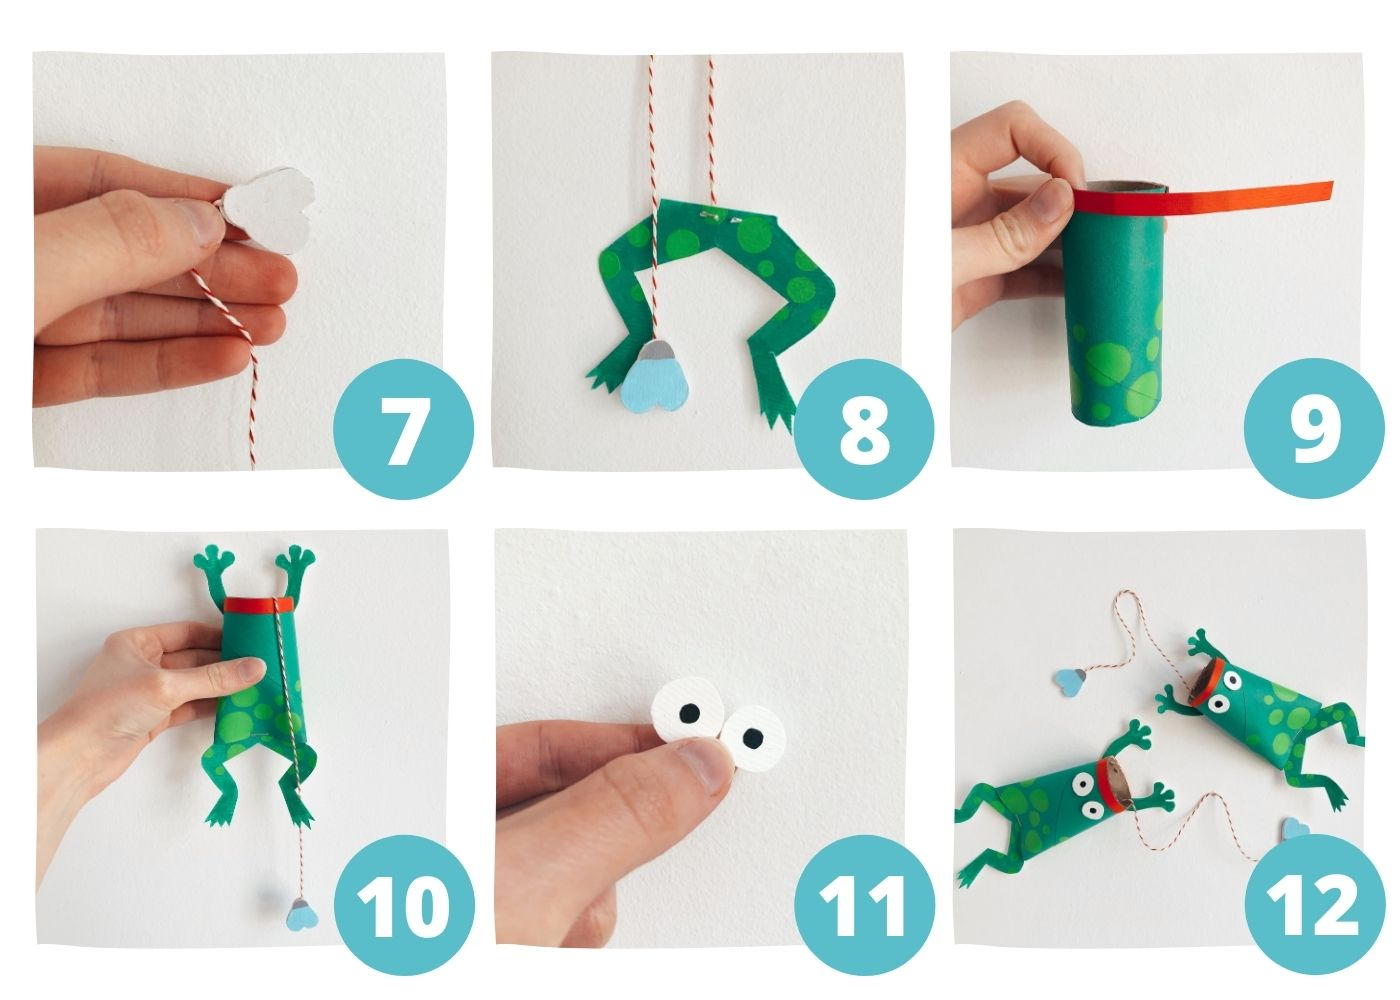 Frog DIY Toilet Paper Roll Crafts Step7-12